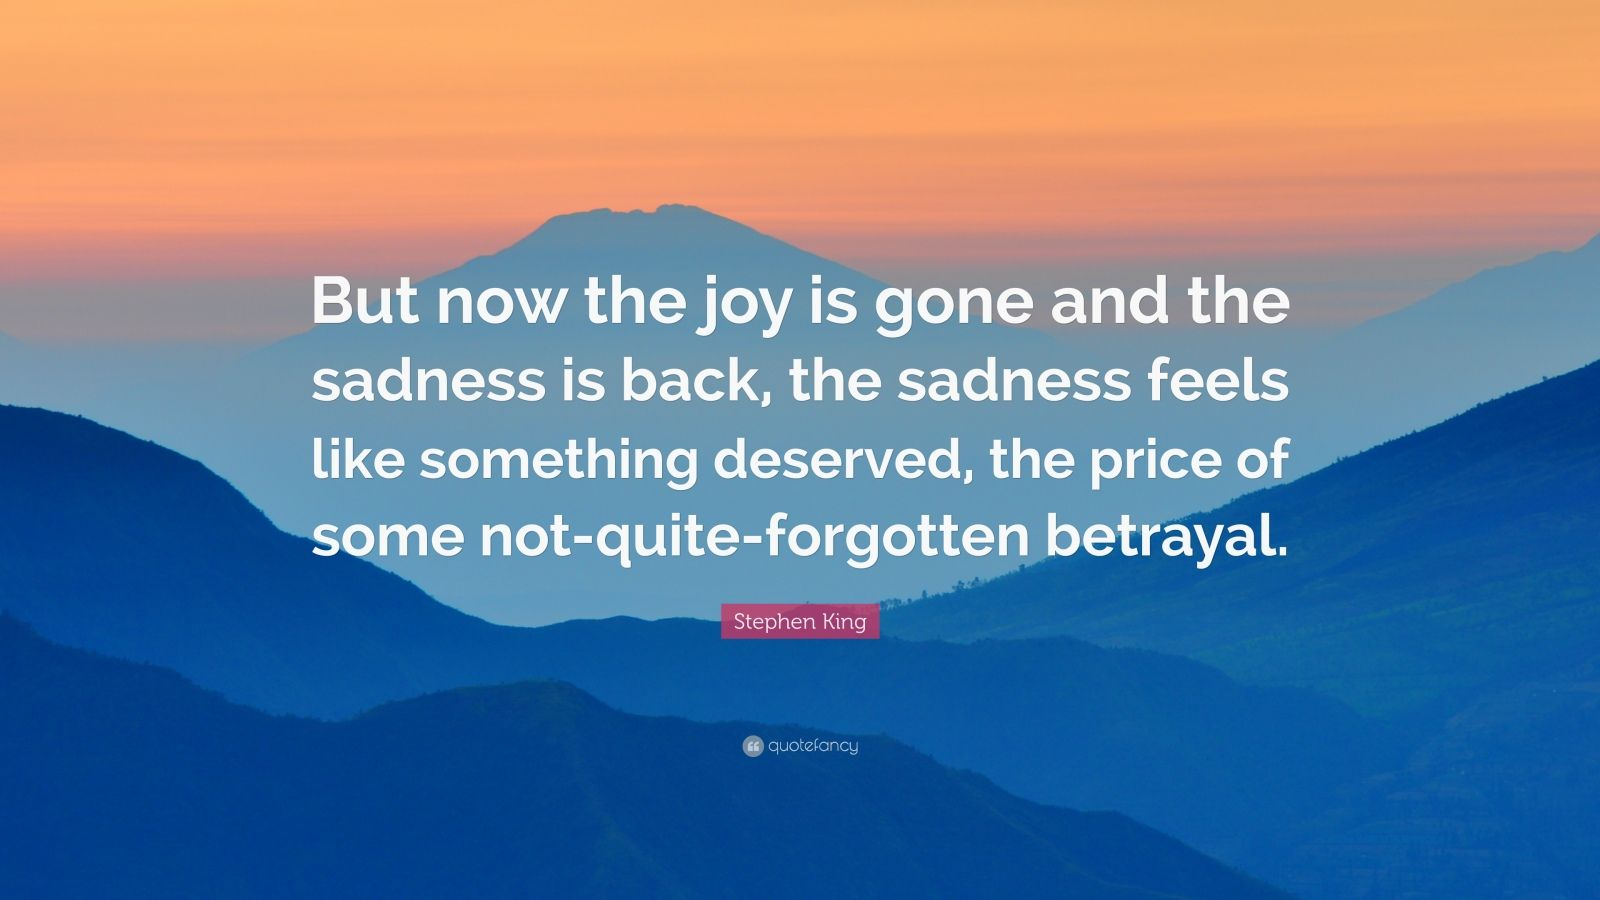 """Stephen King Quote: """"But now the joy is gone and the sadness is back, the sadness feels like something deserved, the price of some not-quite-forgotten betrayal."""""""